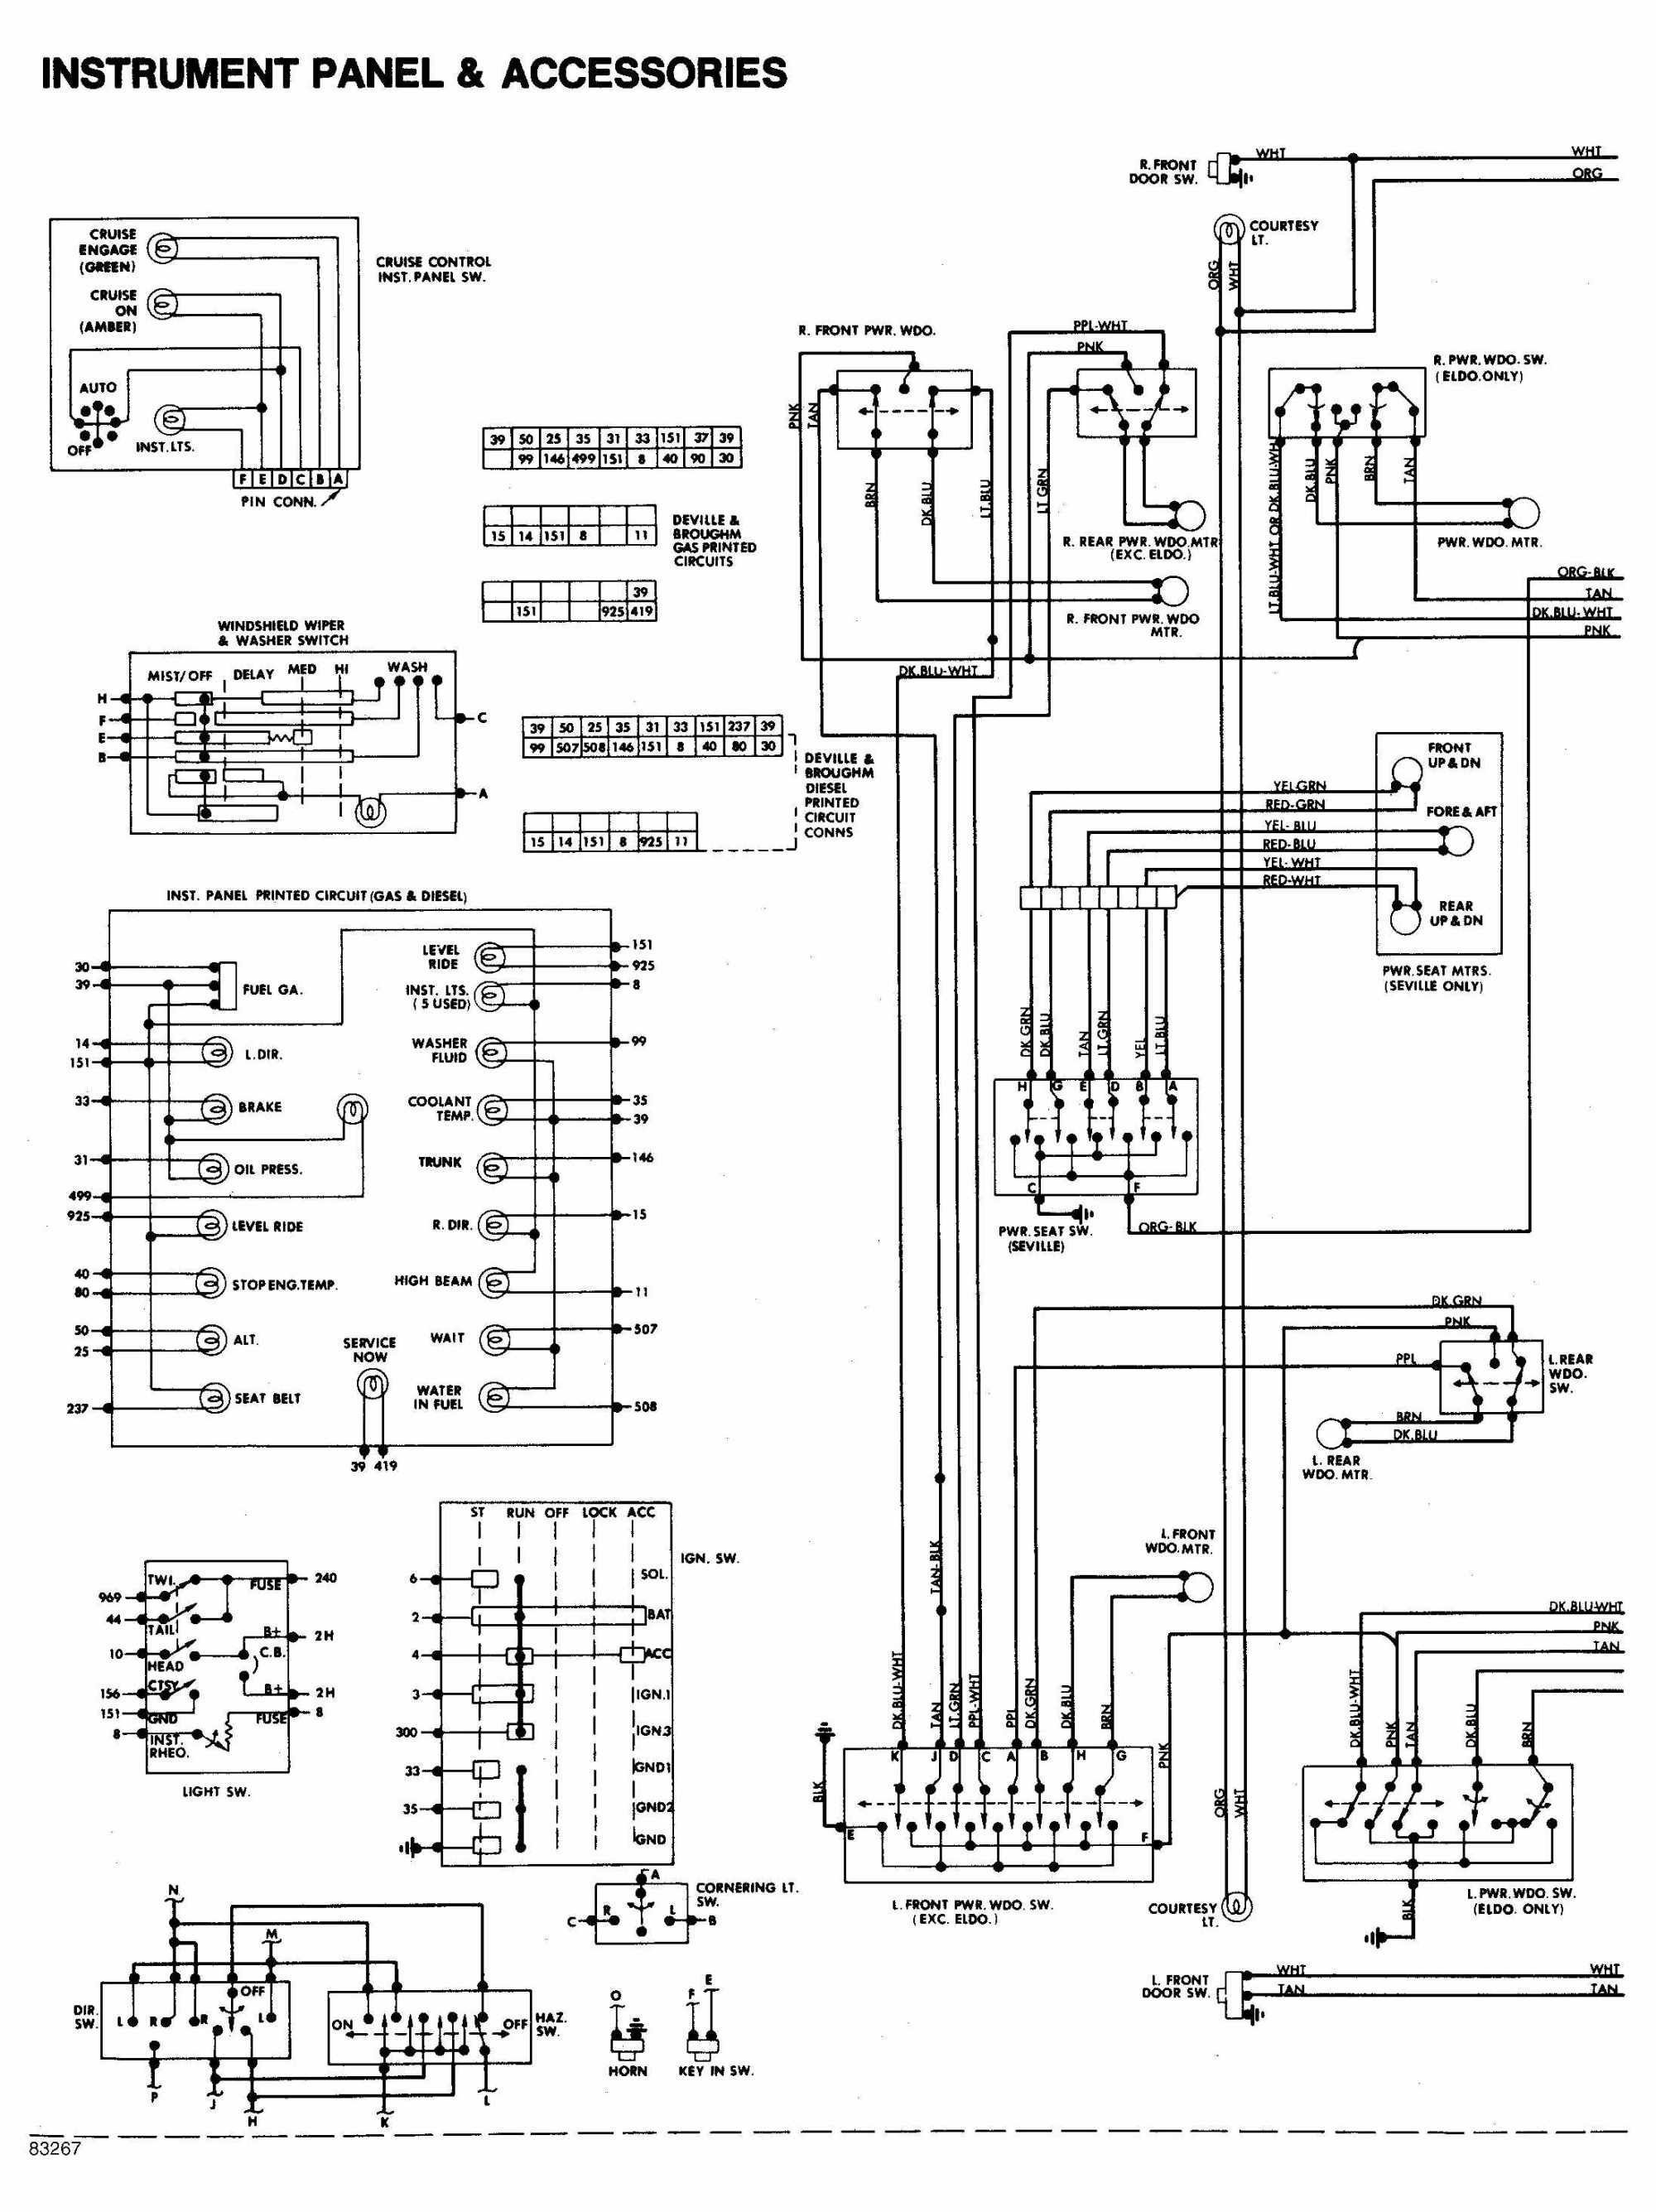 hight resolution of 96 cadillac eldorado wiring harness wiring diagram todays rh 9 5 10 1813weddingbarn com 1996 cadillac deville alternator wiring diagram wiring diagram 1976